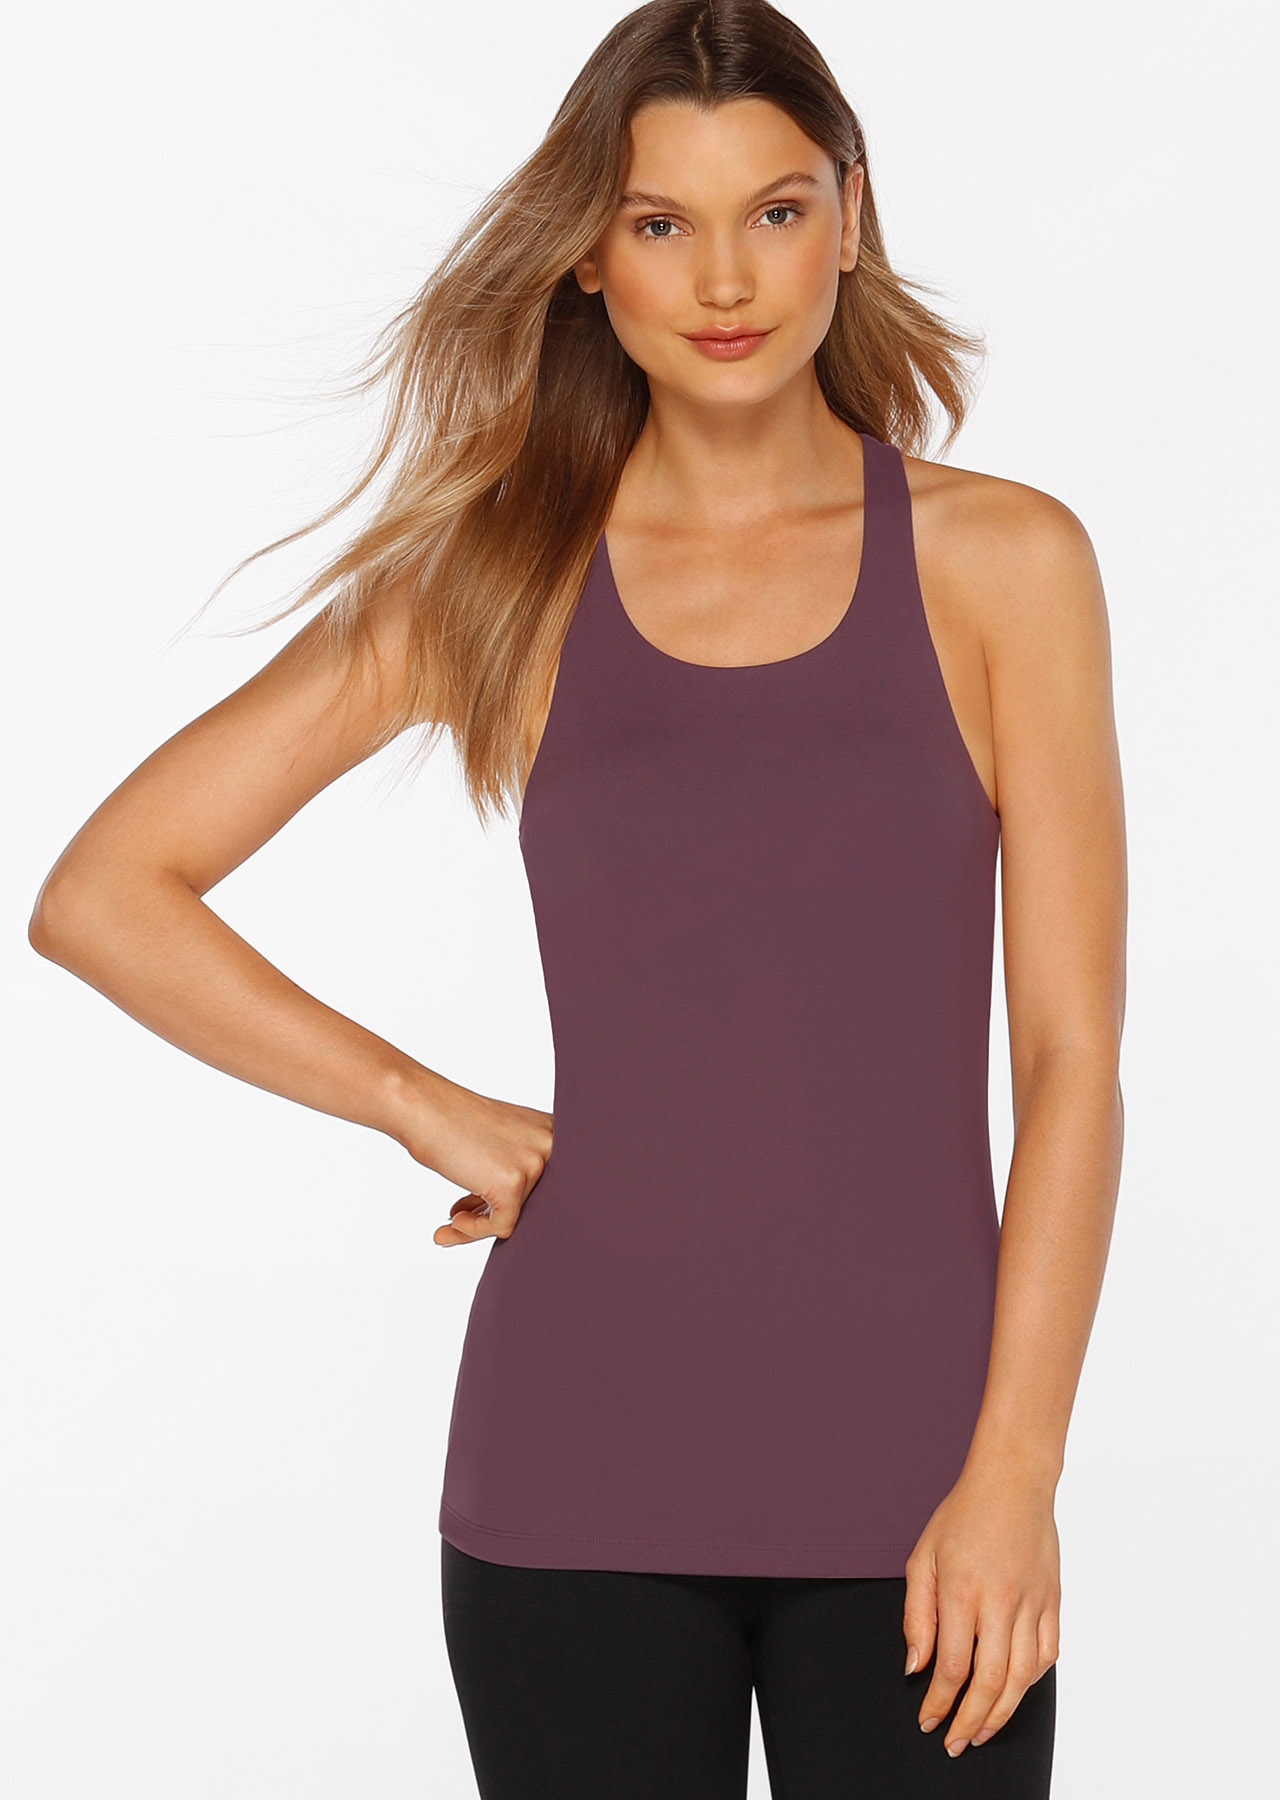 shape and define excel tank purple 071969 softvio 1 - Sports & Fitness